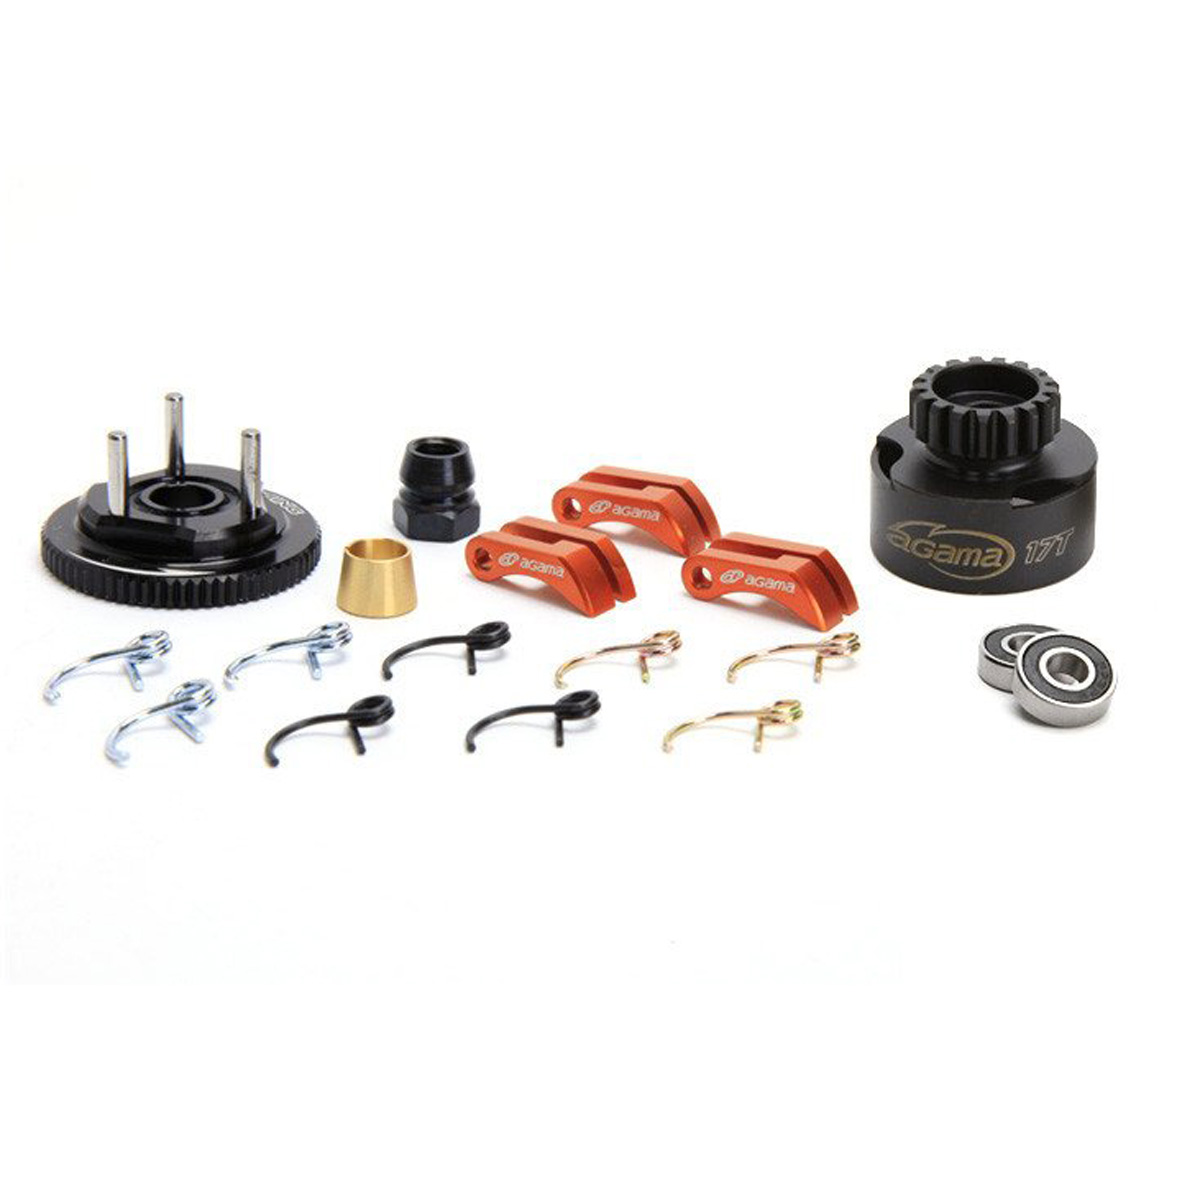 Agama Clutch Bell & Complete Clutch Set (w/ 17T Bell)